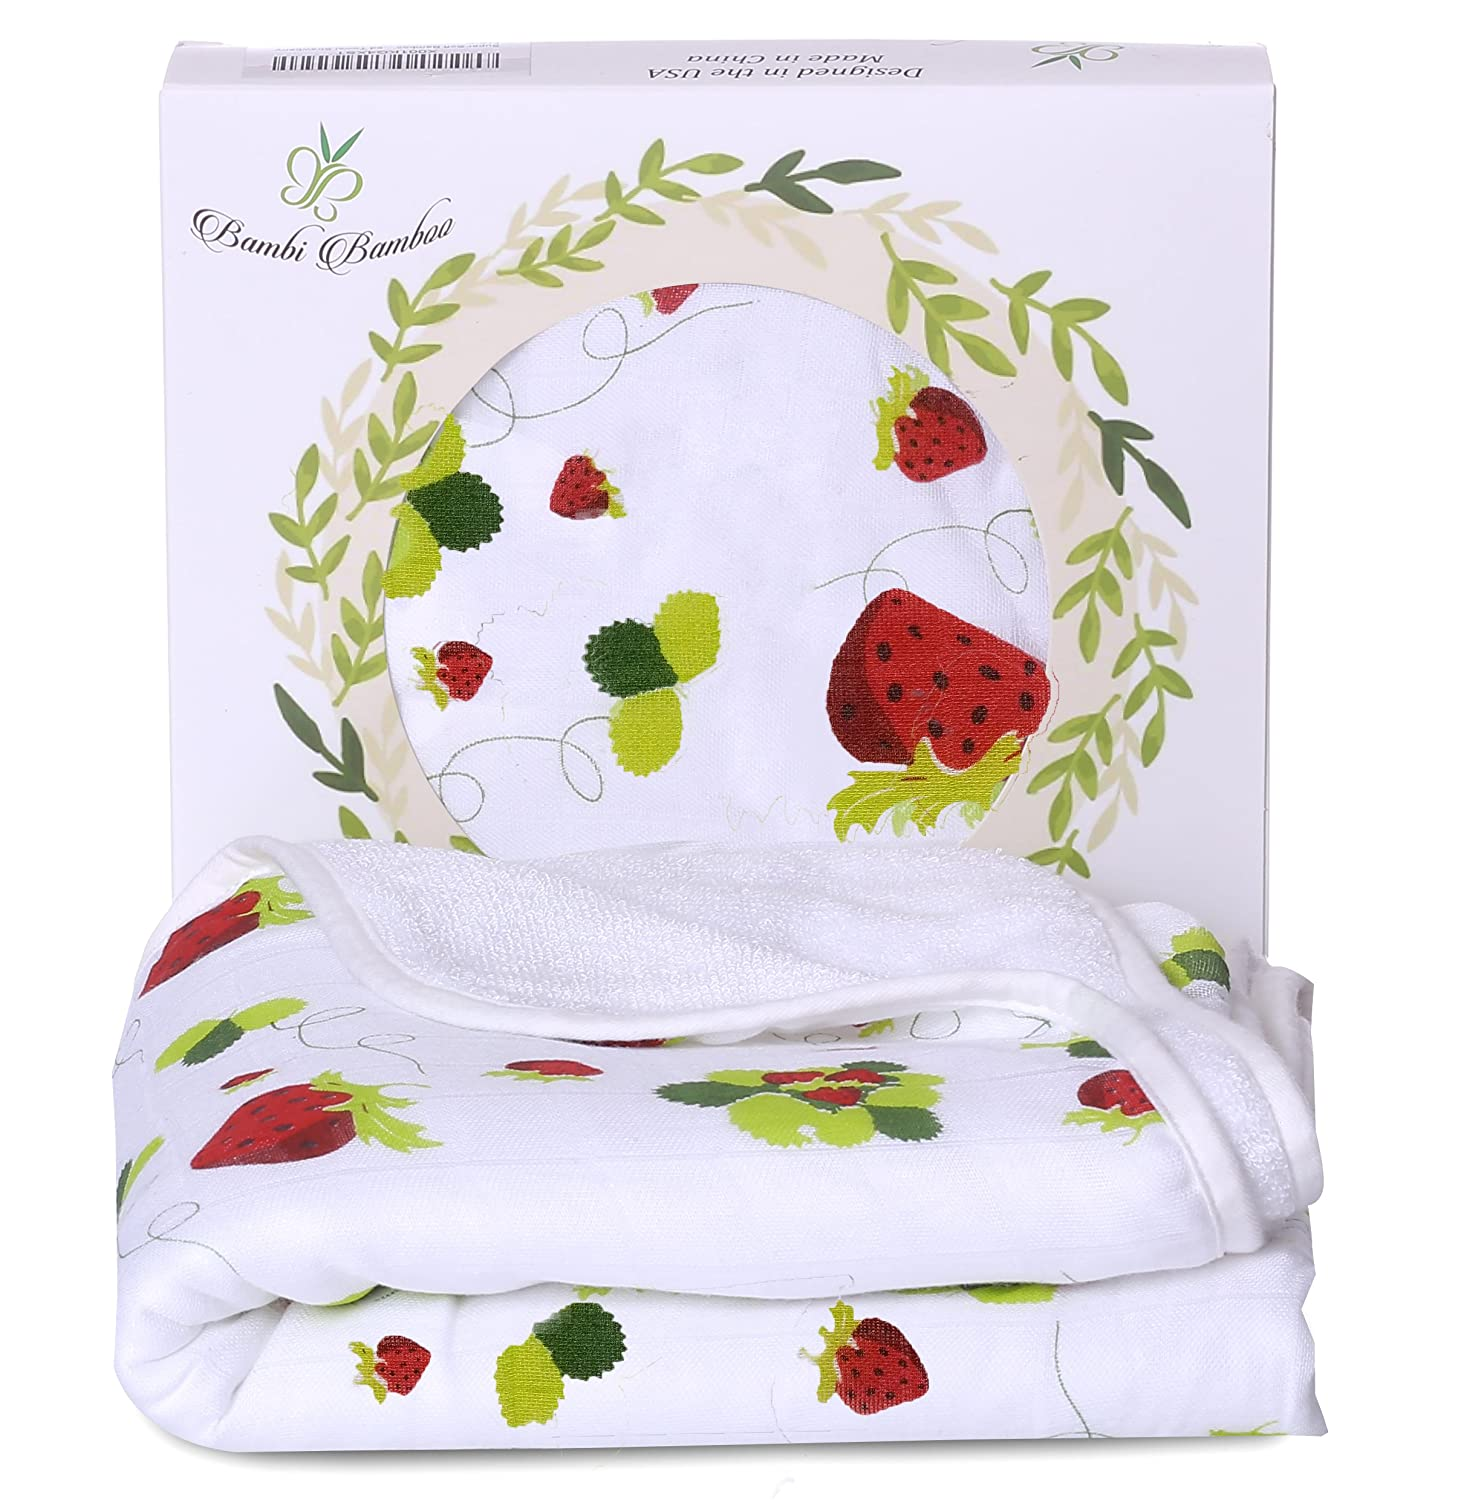 Bambi Bamboo Baby Hooded Towel for Sensitive Skin | Super Soft, Absorbent and Hypoallergenic | Strawberry, 2 Layers Reversible| Sized for Infant and Toddler